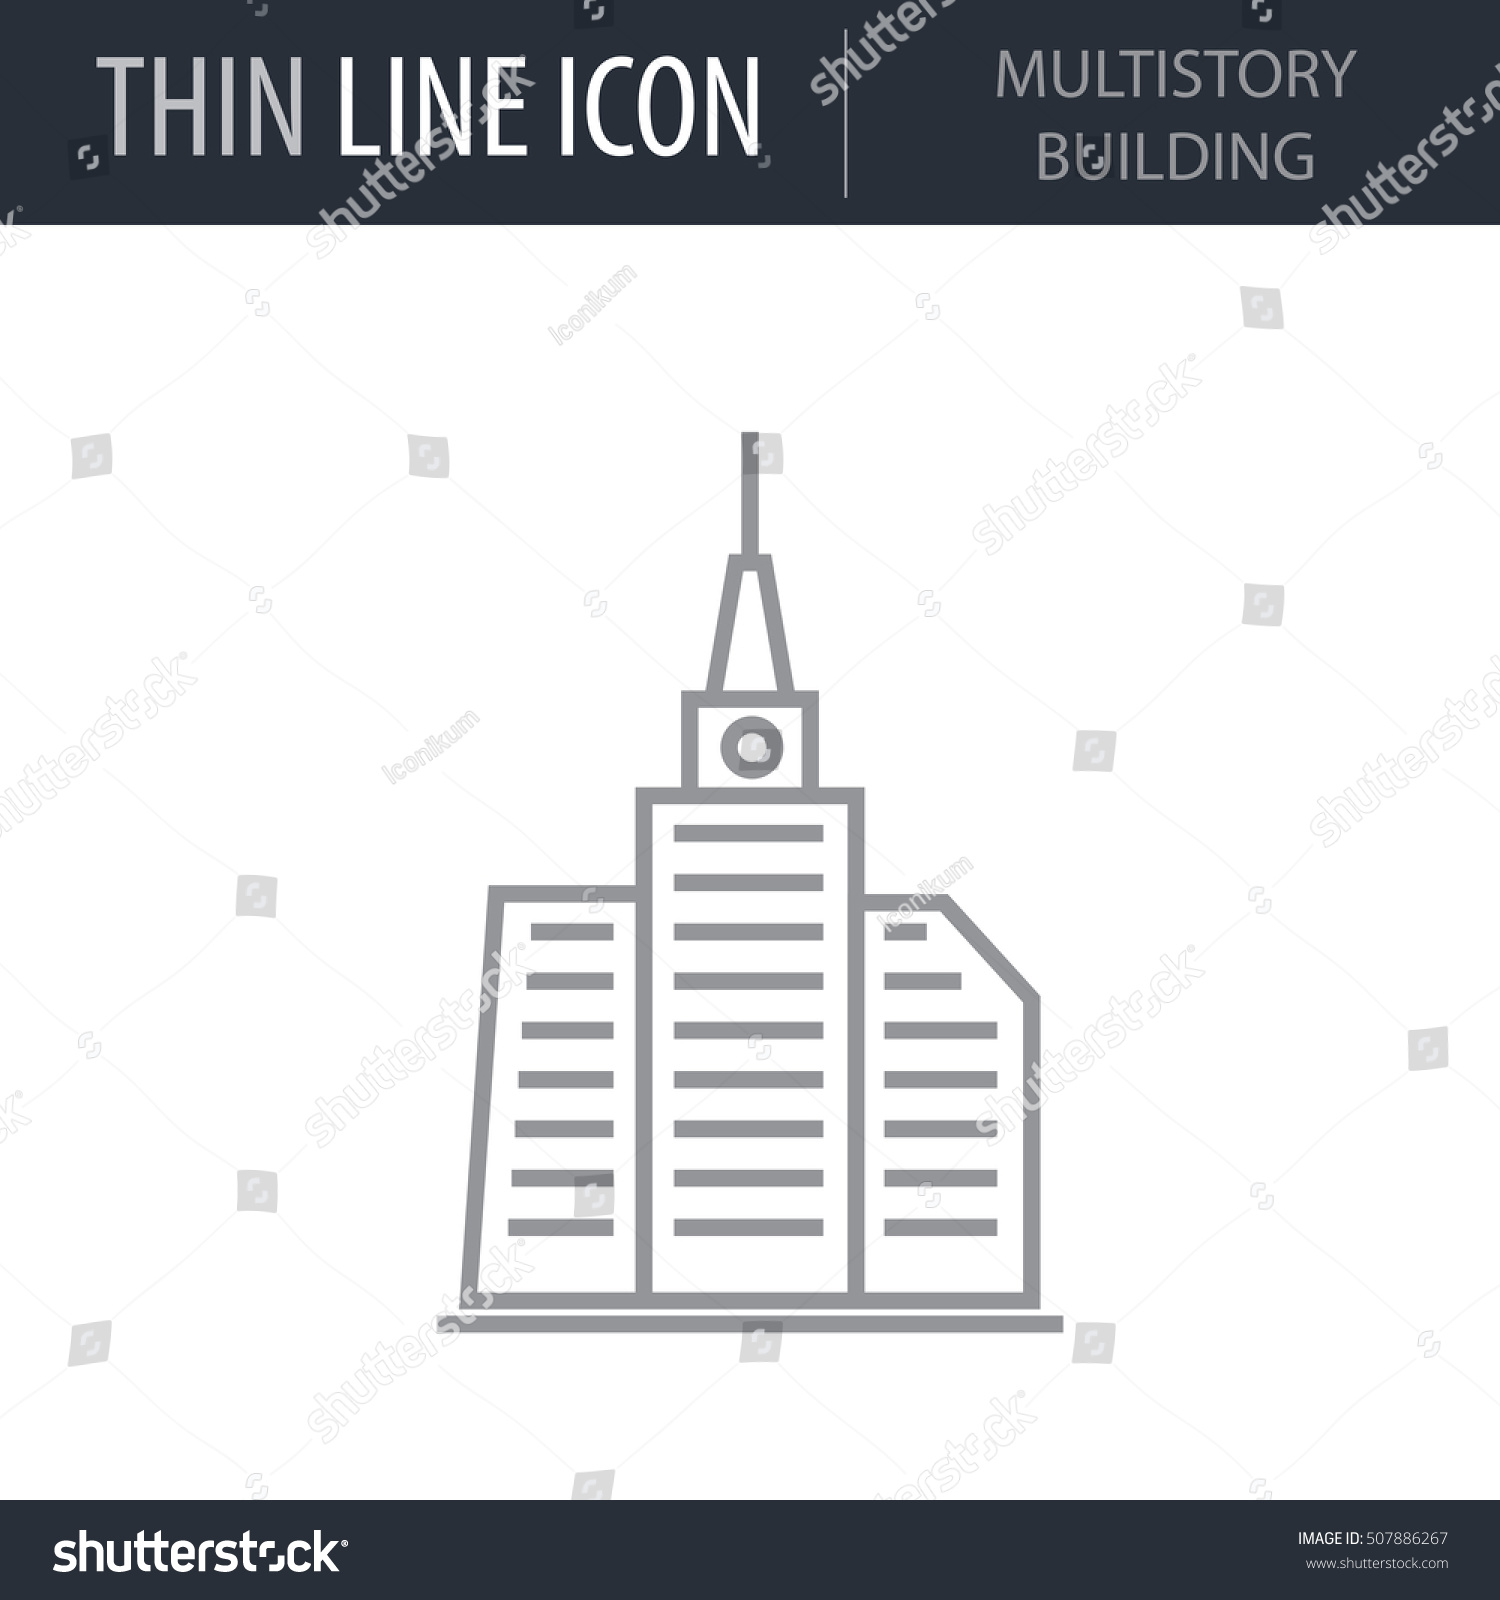 Symbol multistory building thin line icon stock vector 507886267 symbol of multistory building thin line icon of construction stroke pictogram graphic for web design buycottarizona Image collections